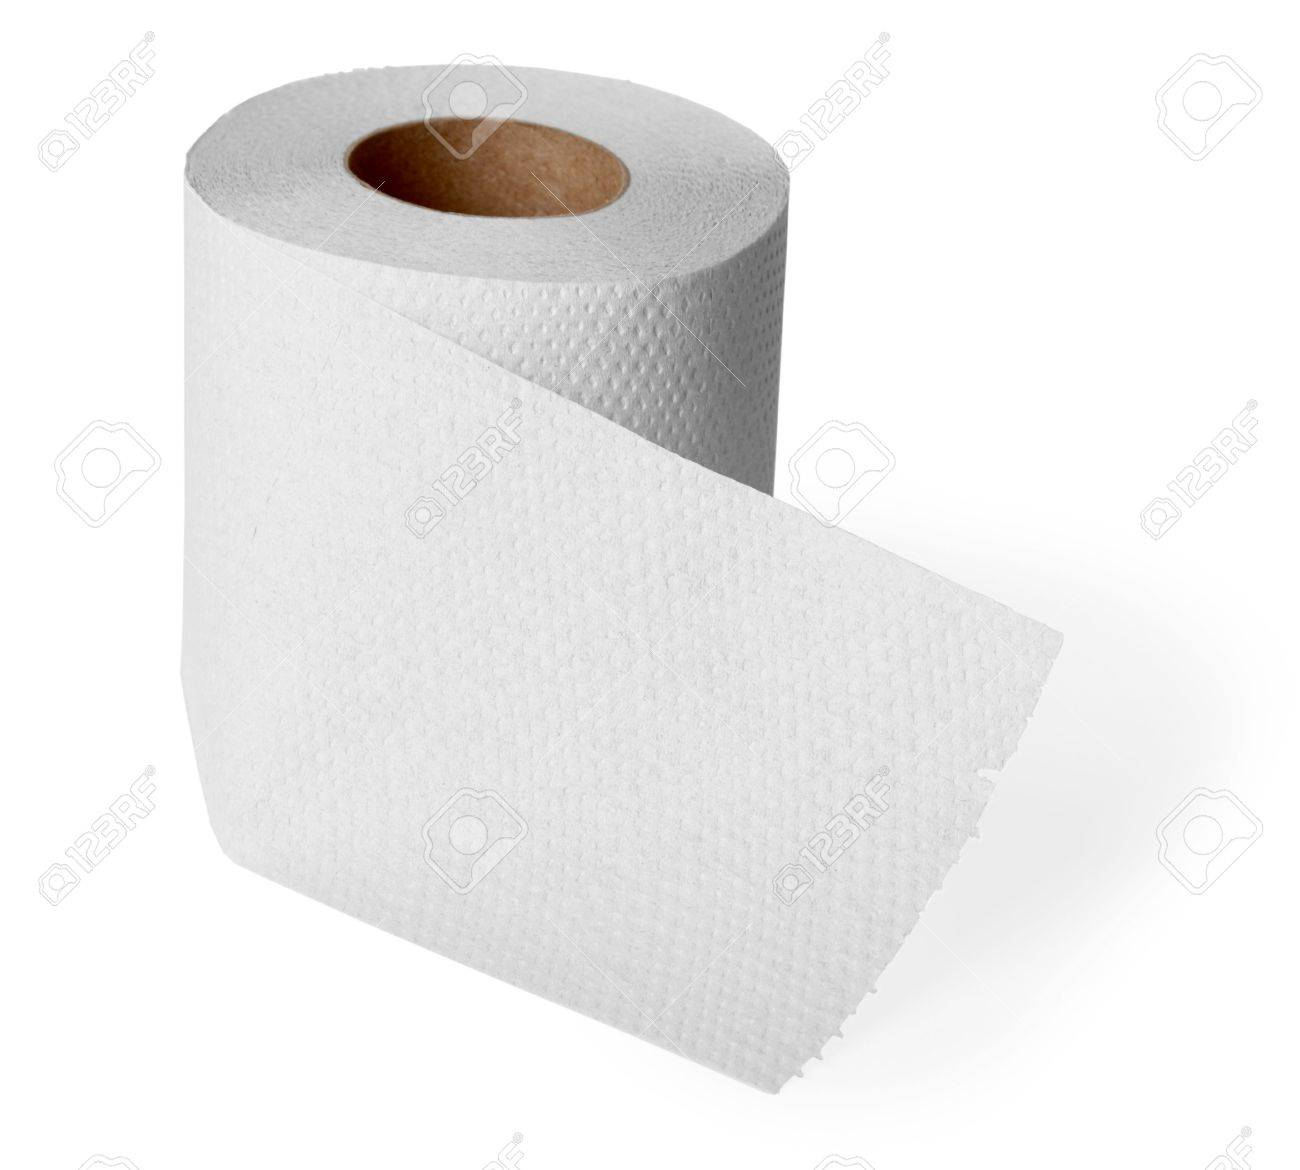 Background information on toilet paper?